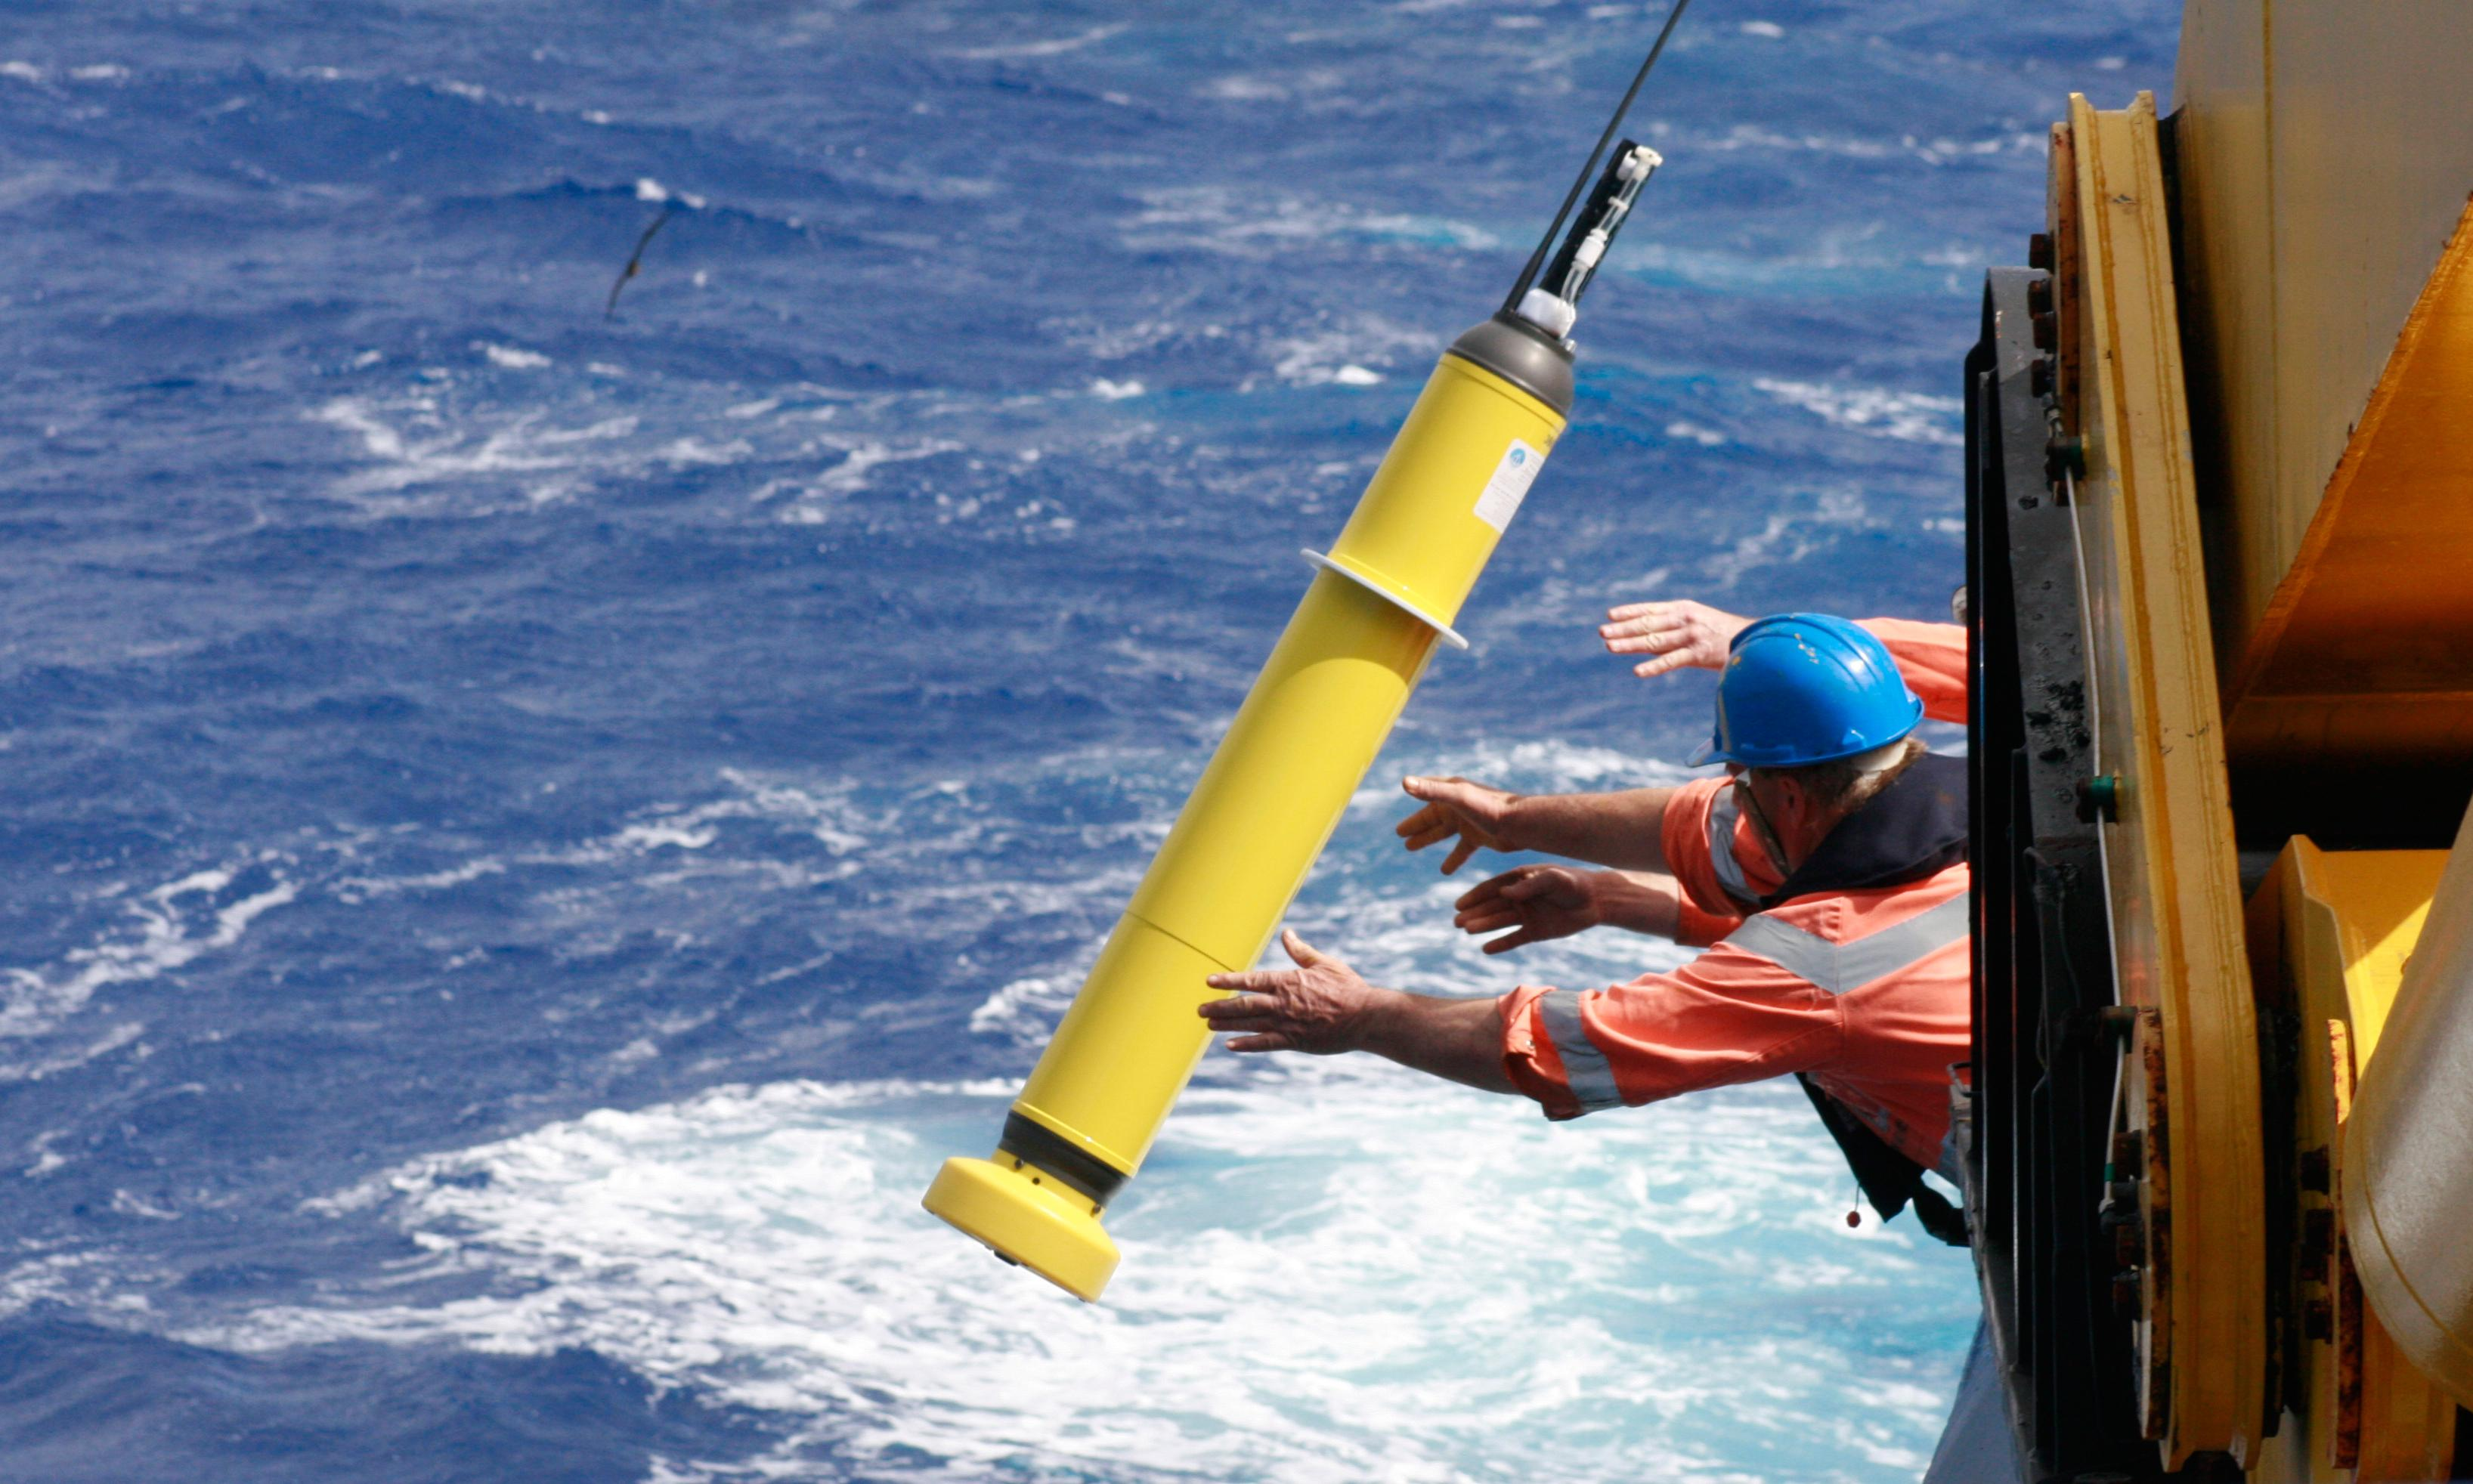 Global warming of oceans equivalent to an atomic bomb per second